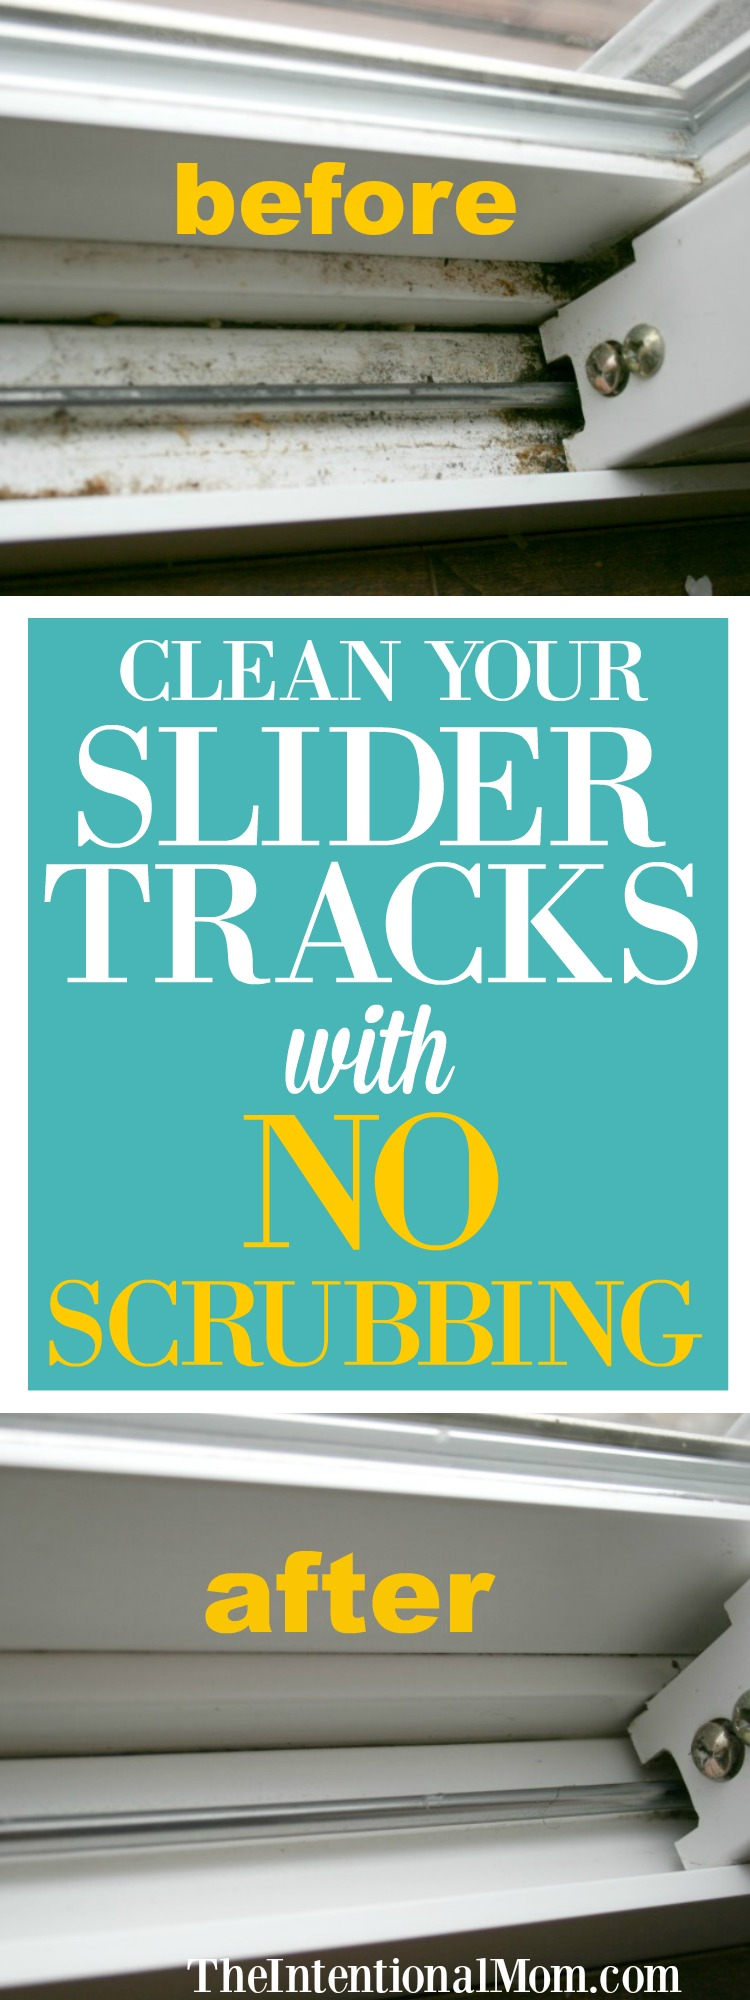 clean slider tracks